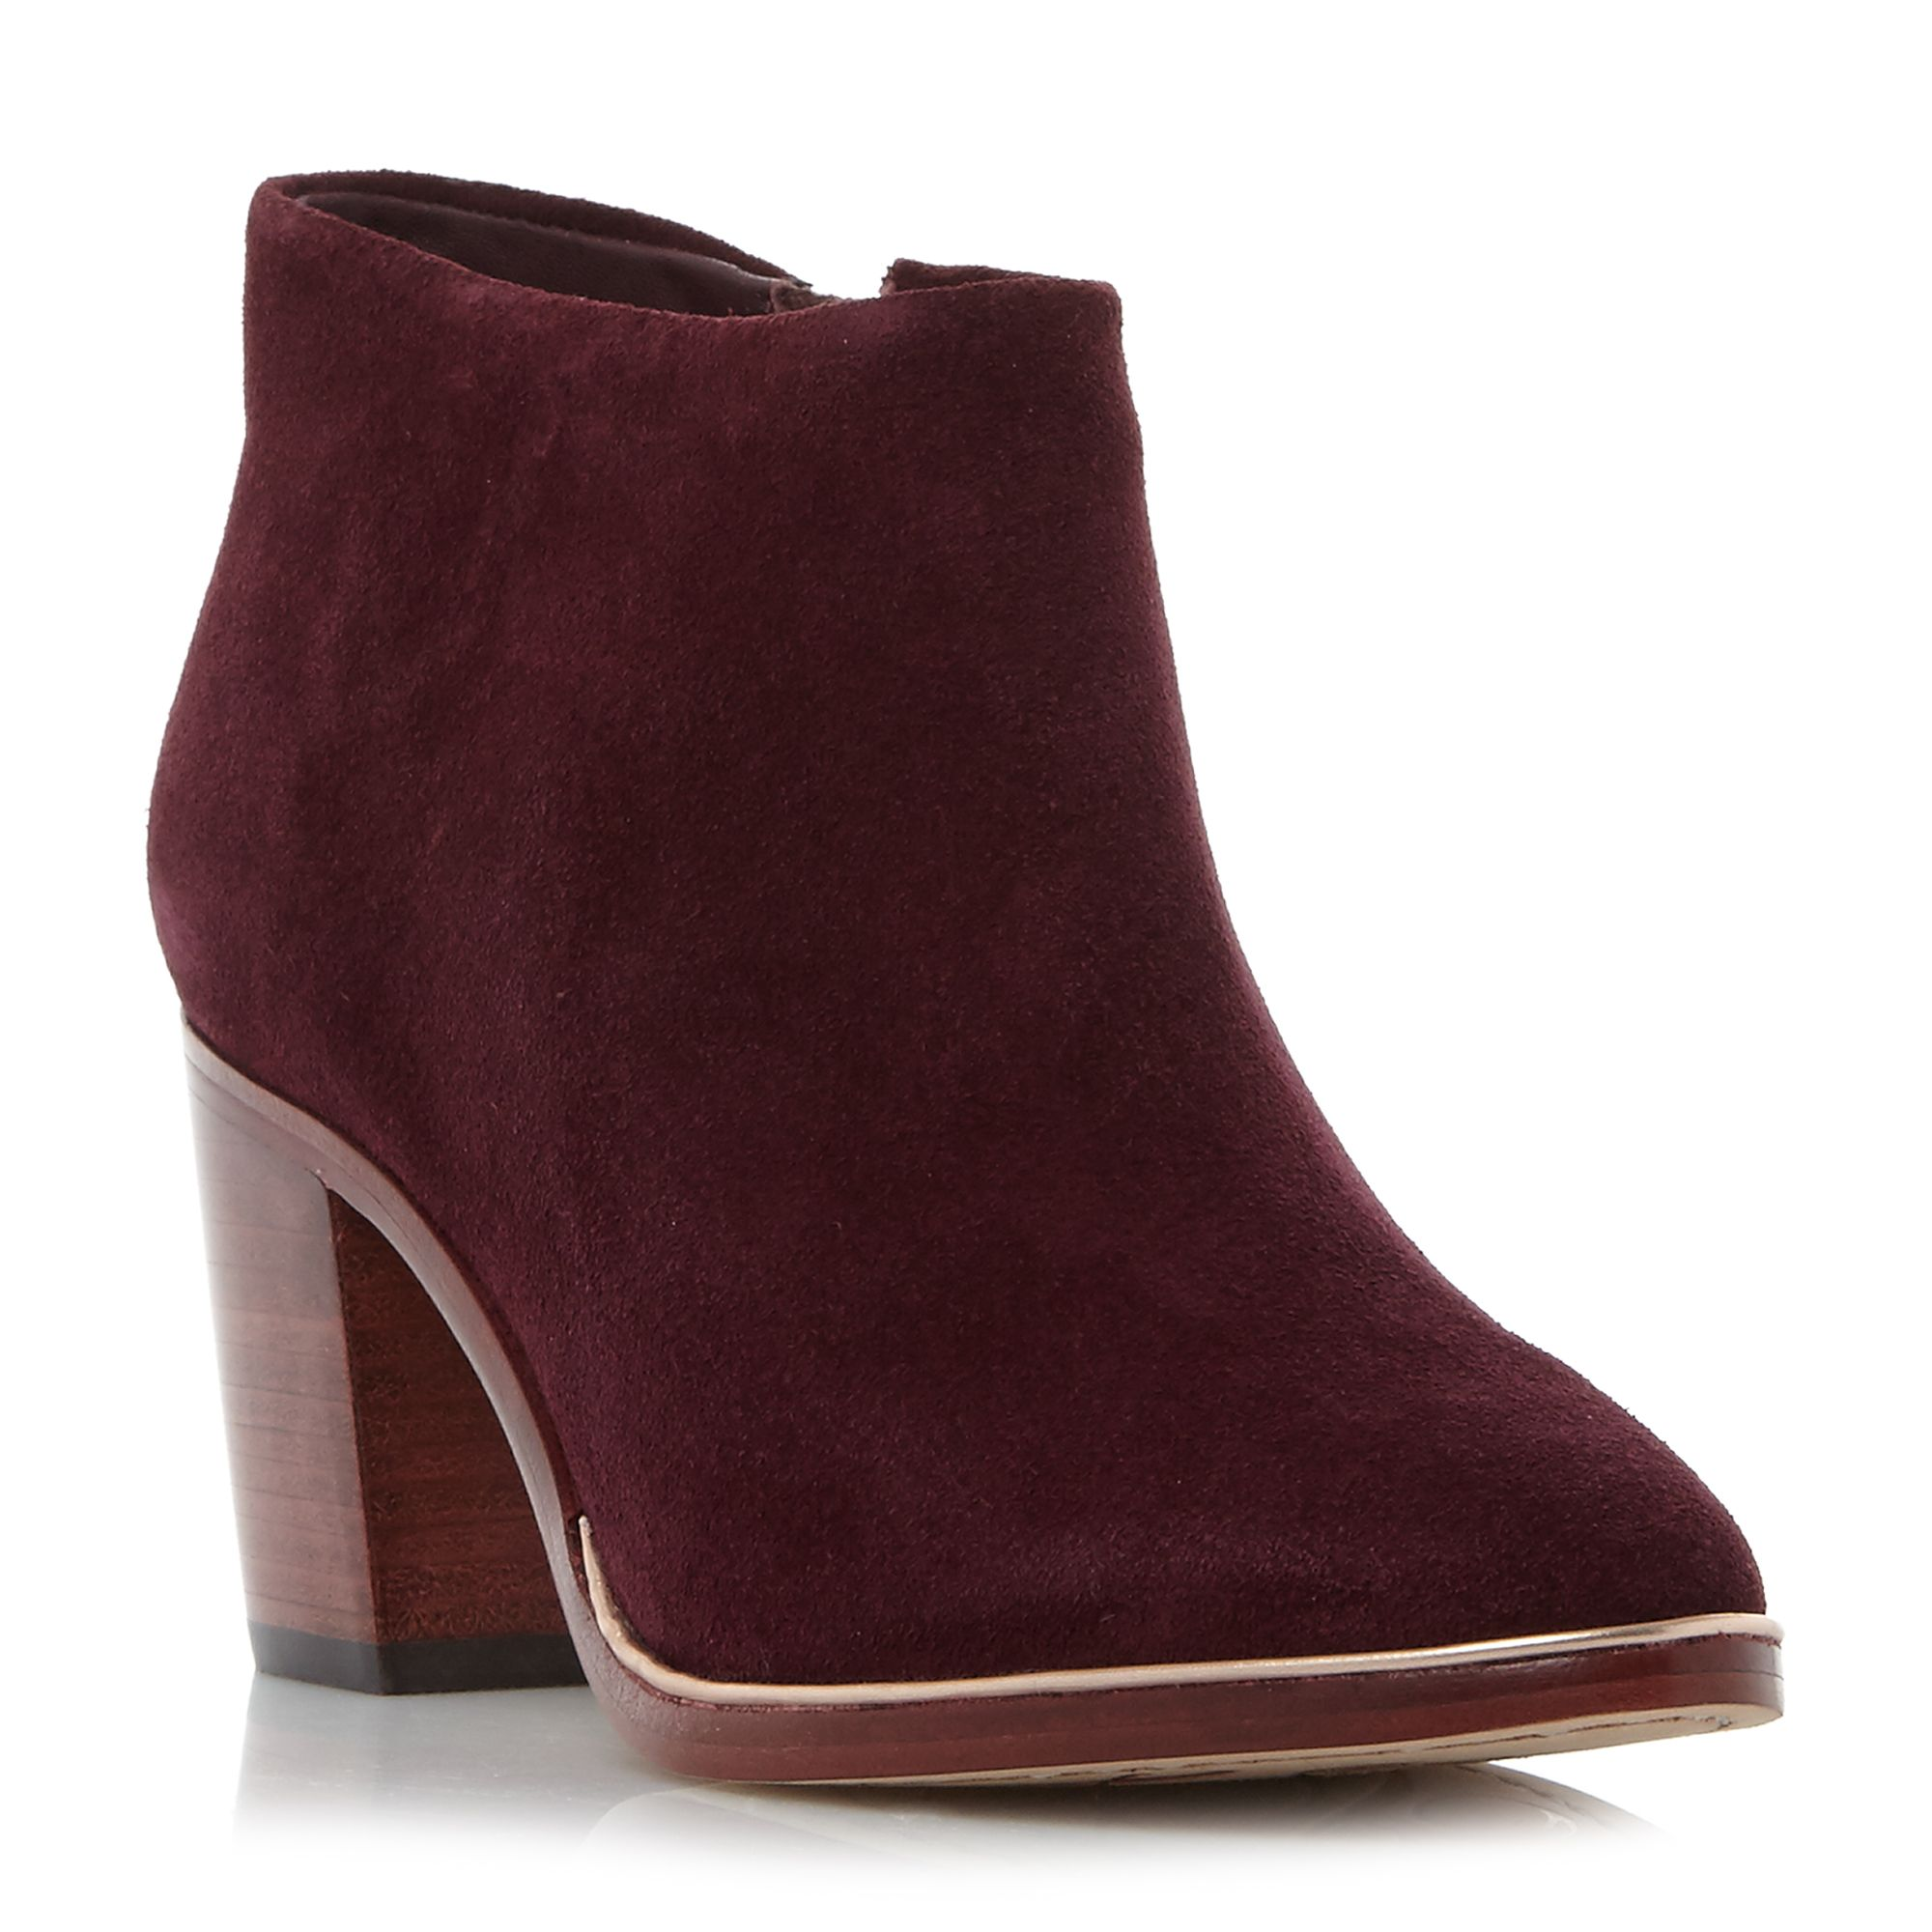 Ted Baker Hiharu 2 suede ankle boots Burgundy